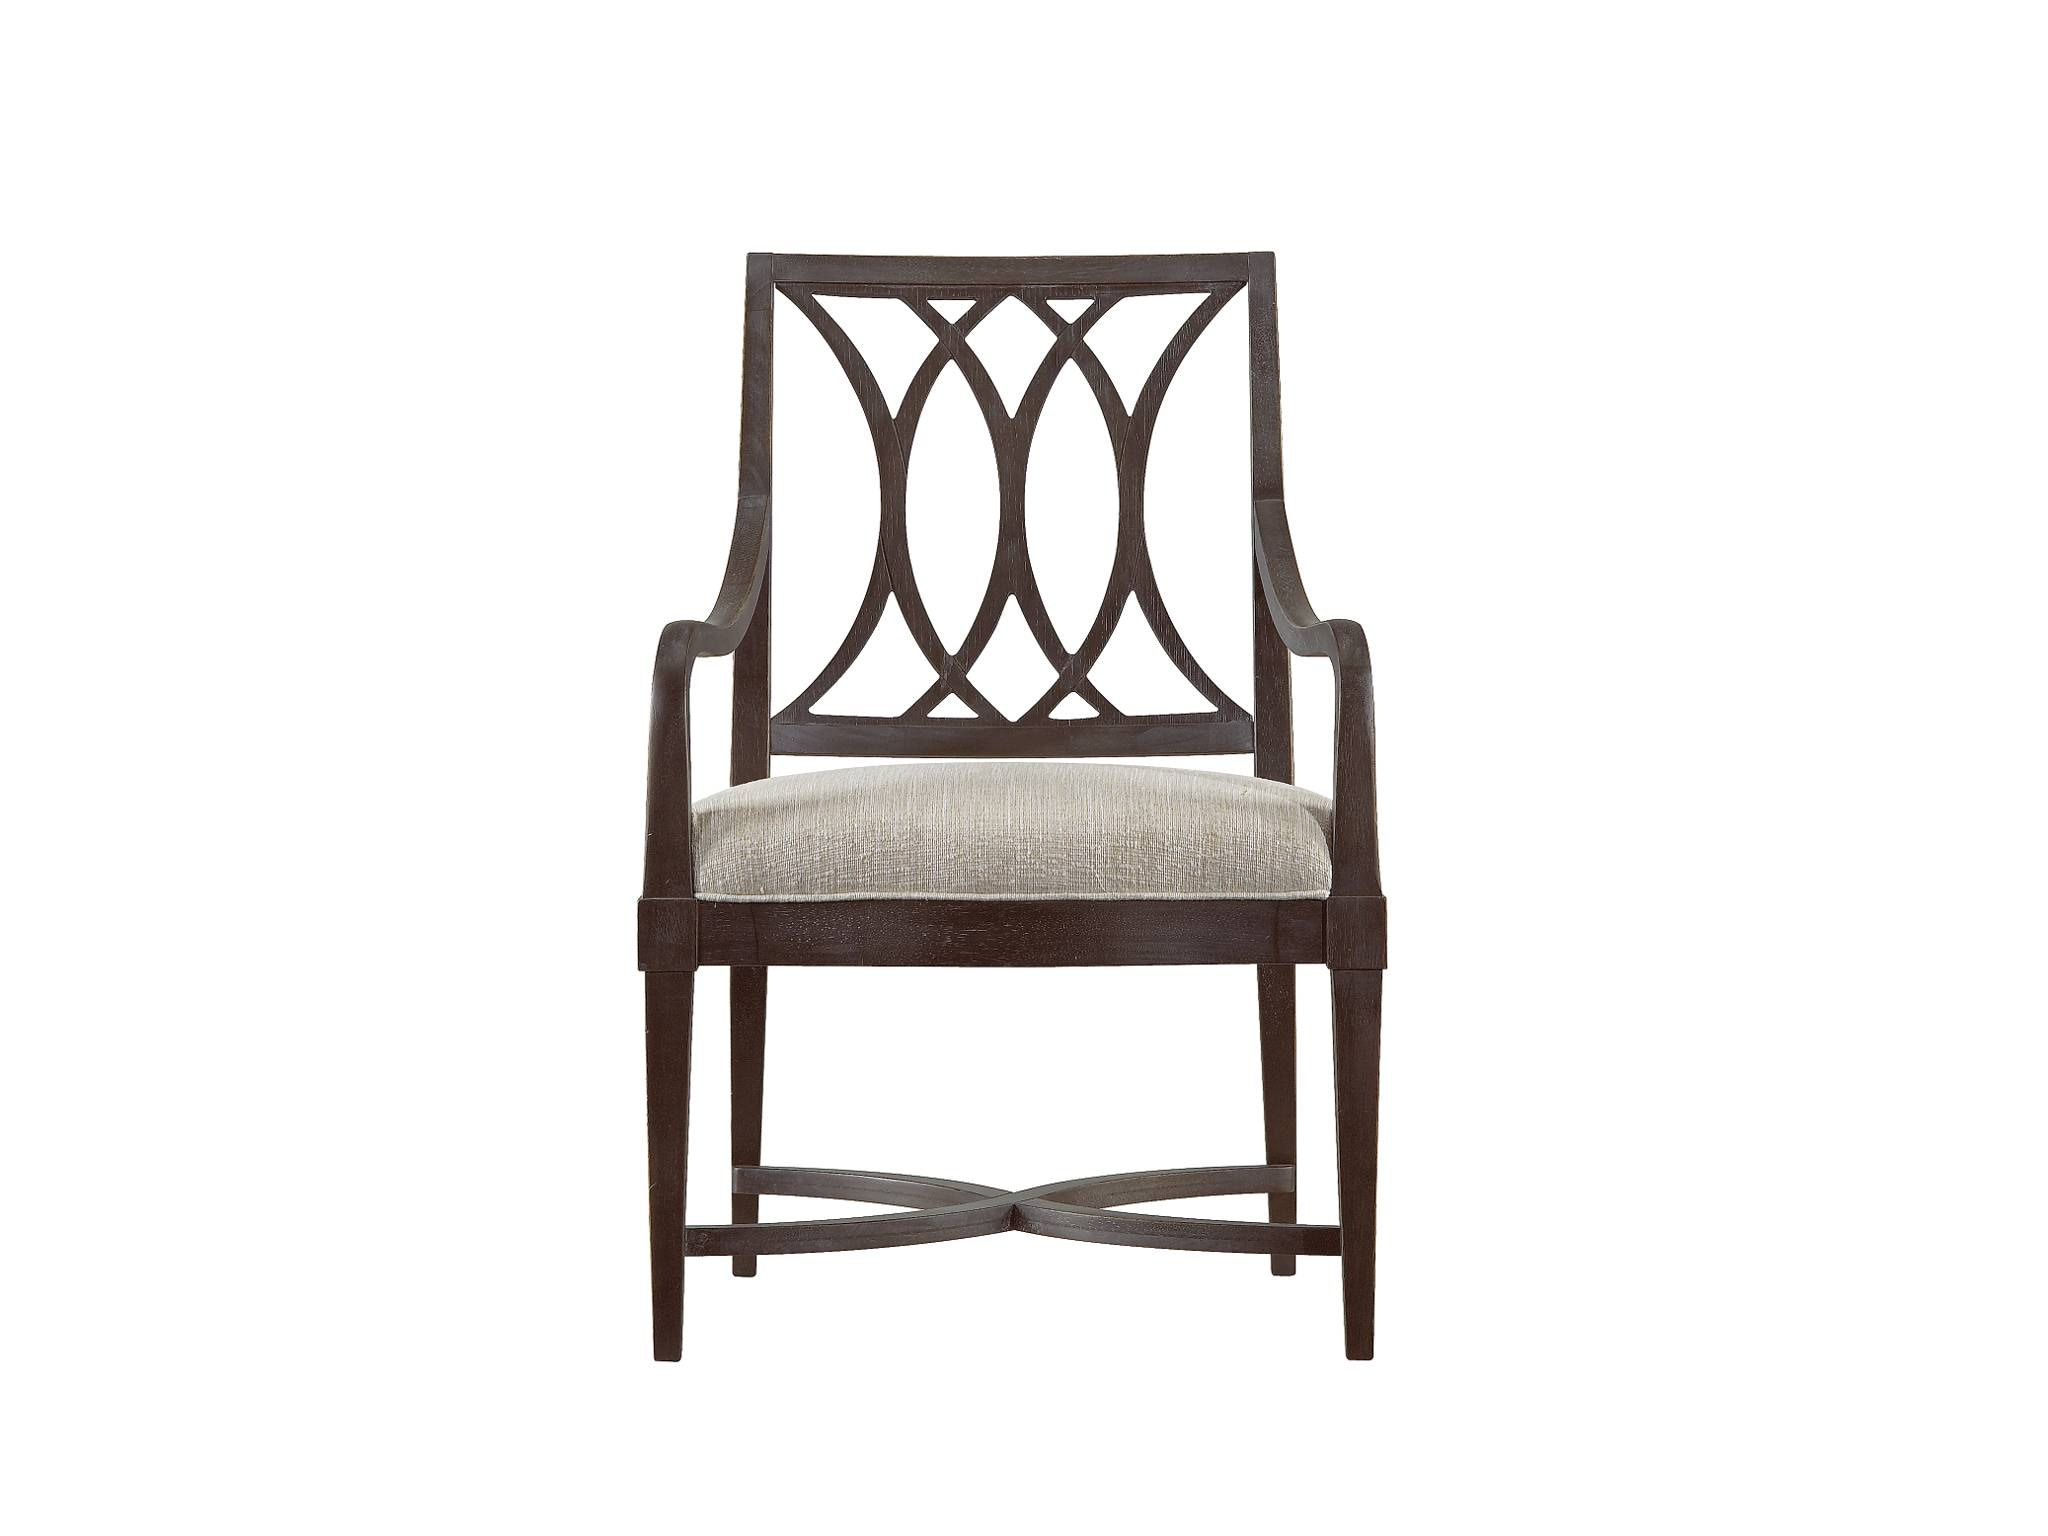 Coastal Living Dining Room Heritage Coast Arm Chair 062-11-70 - Haynes Brothers - Volusia County